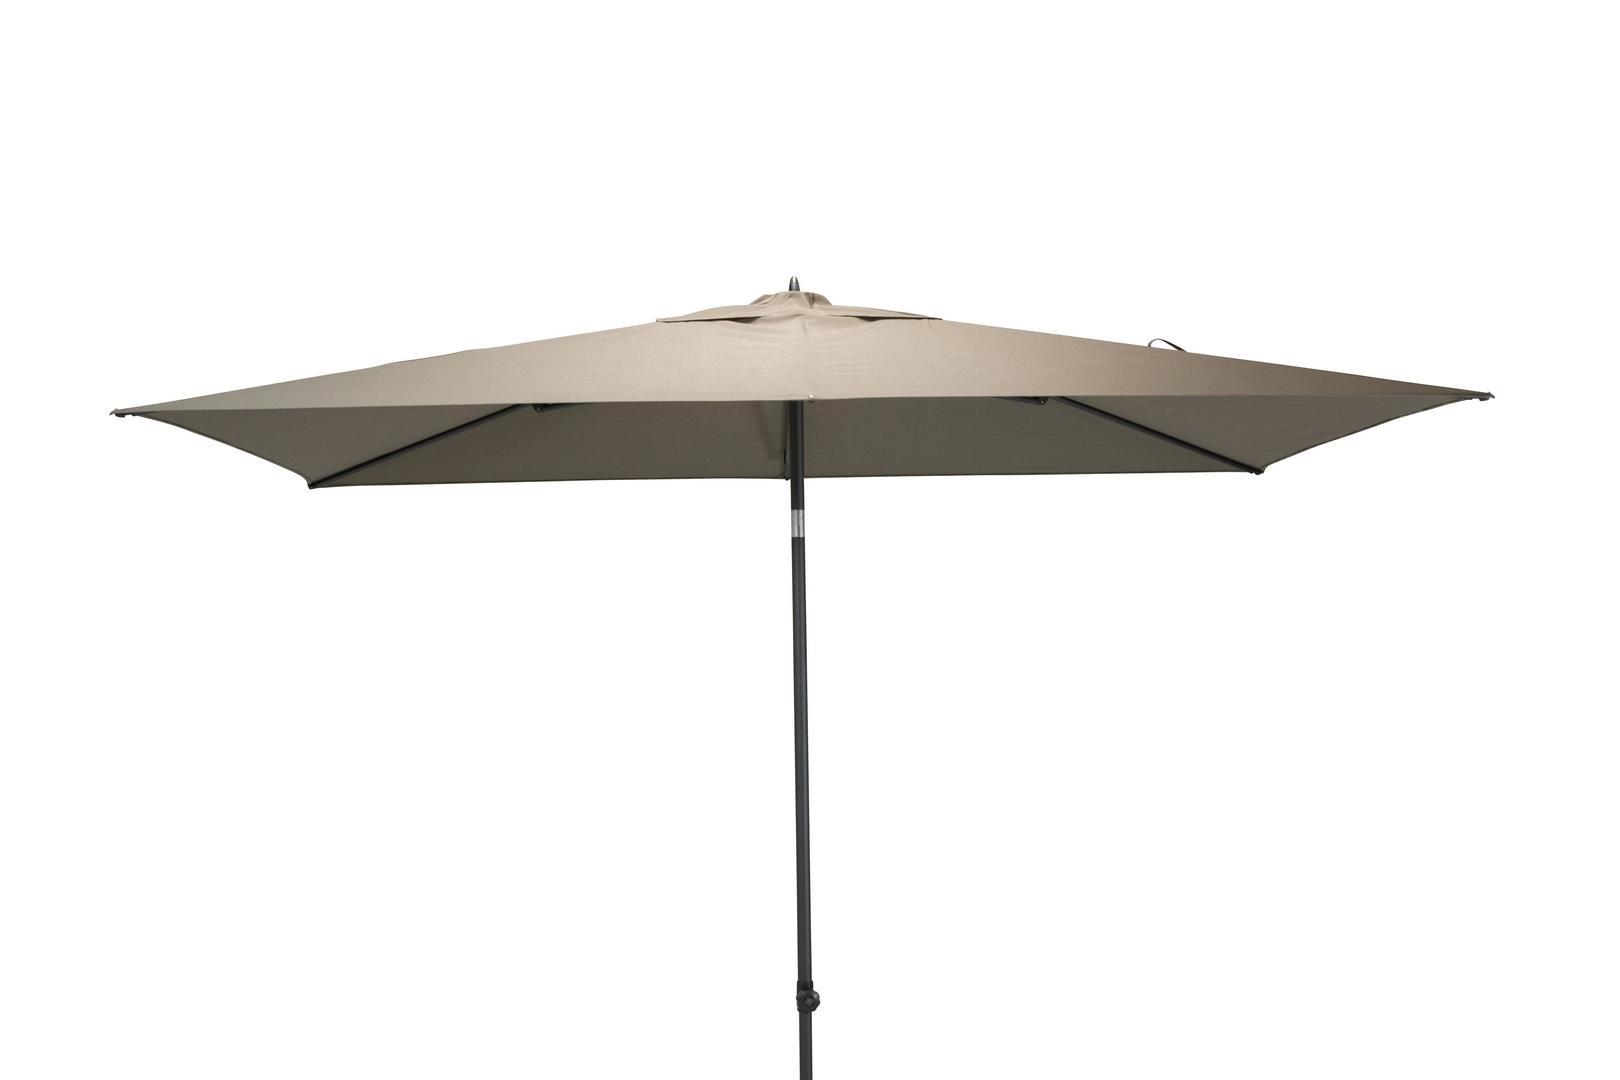 4 Seasons Outdoor Azzurro 2 x 3m parasol Taupe